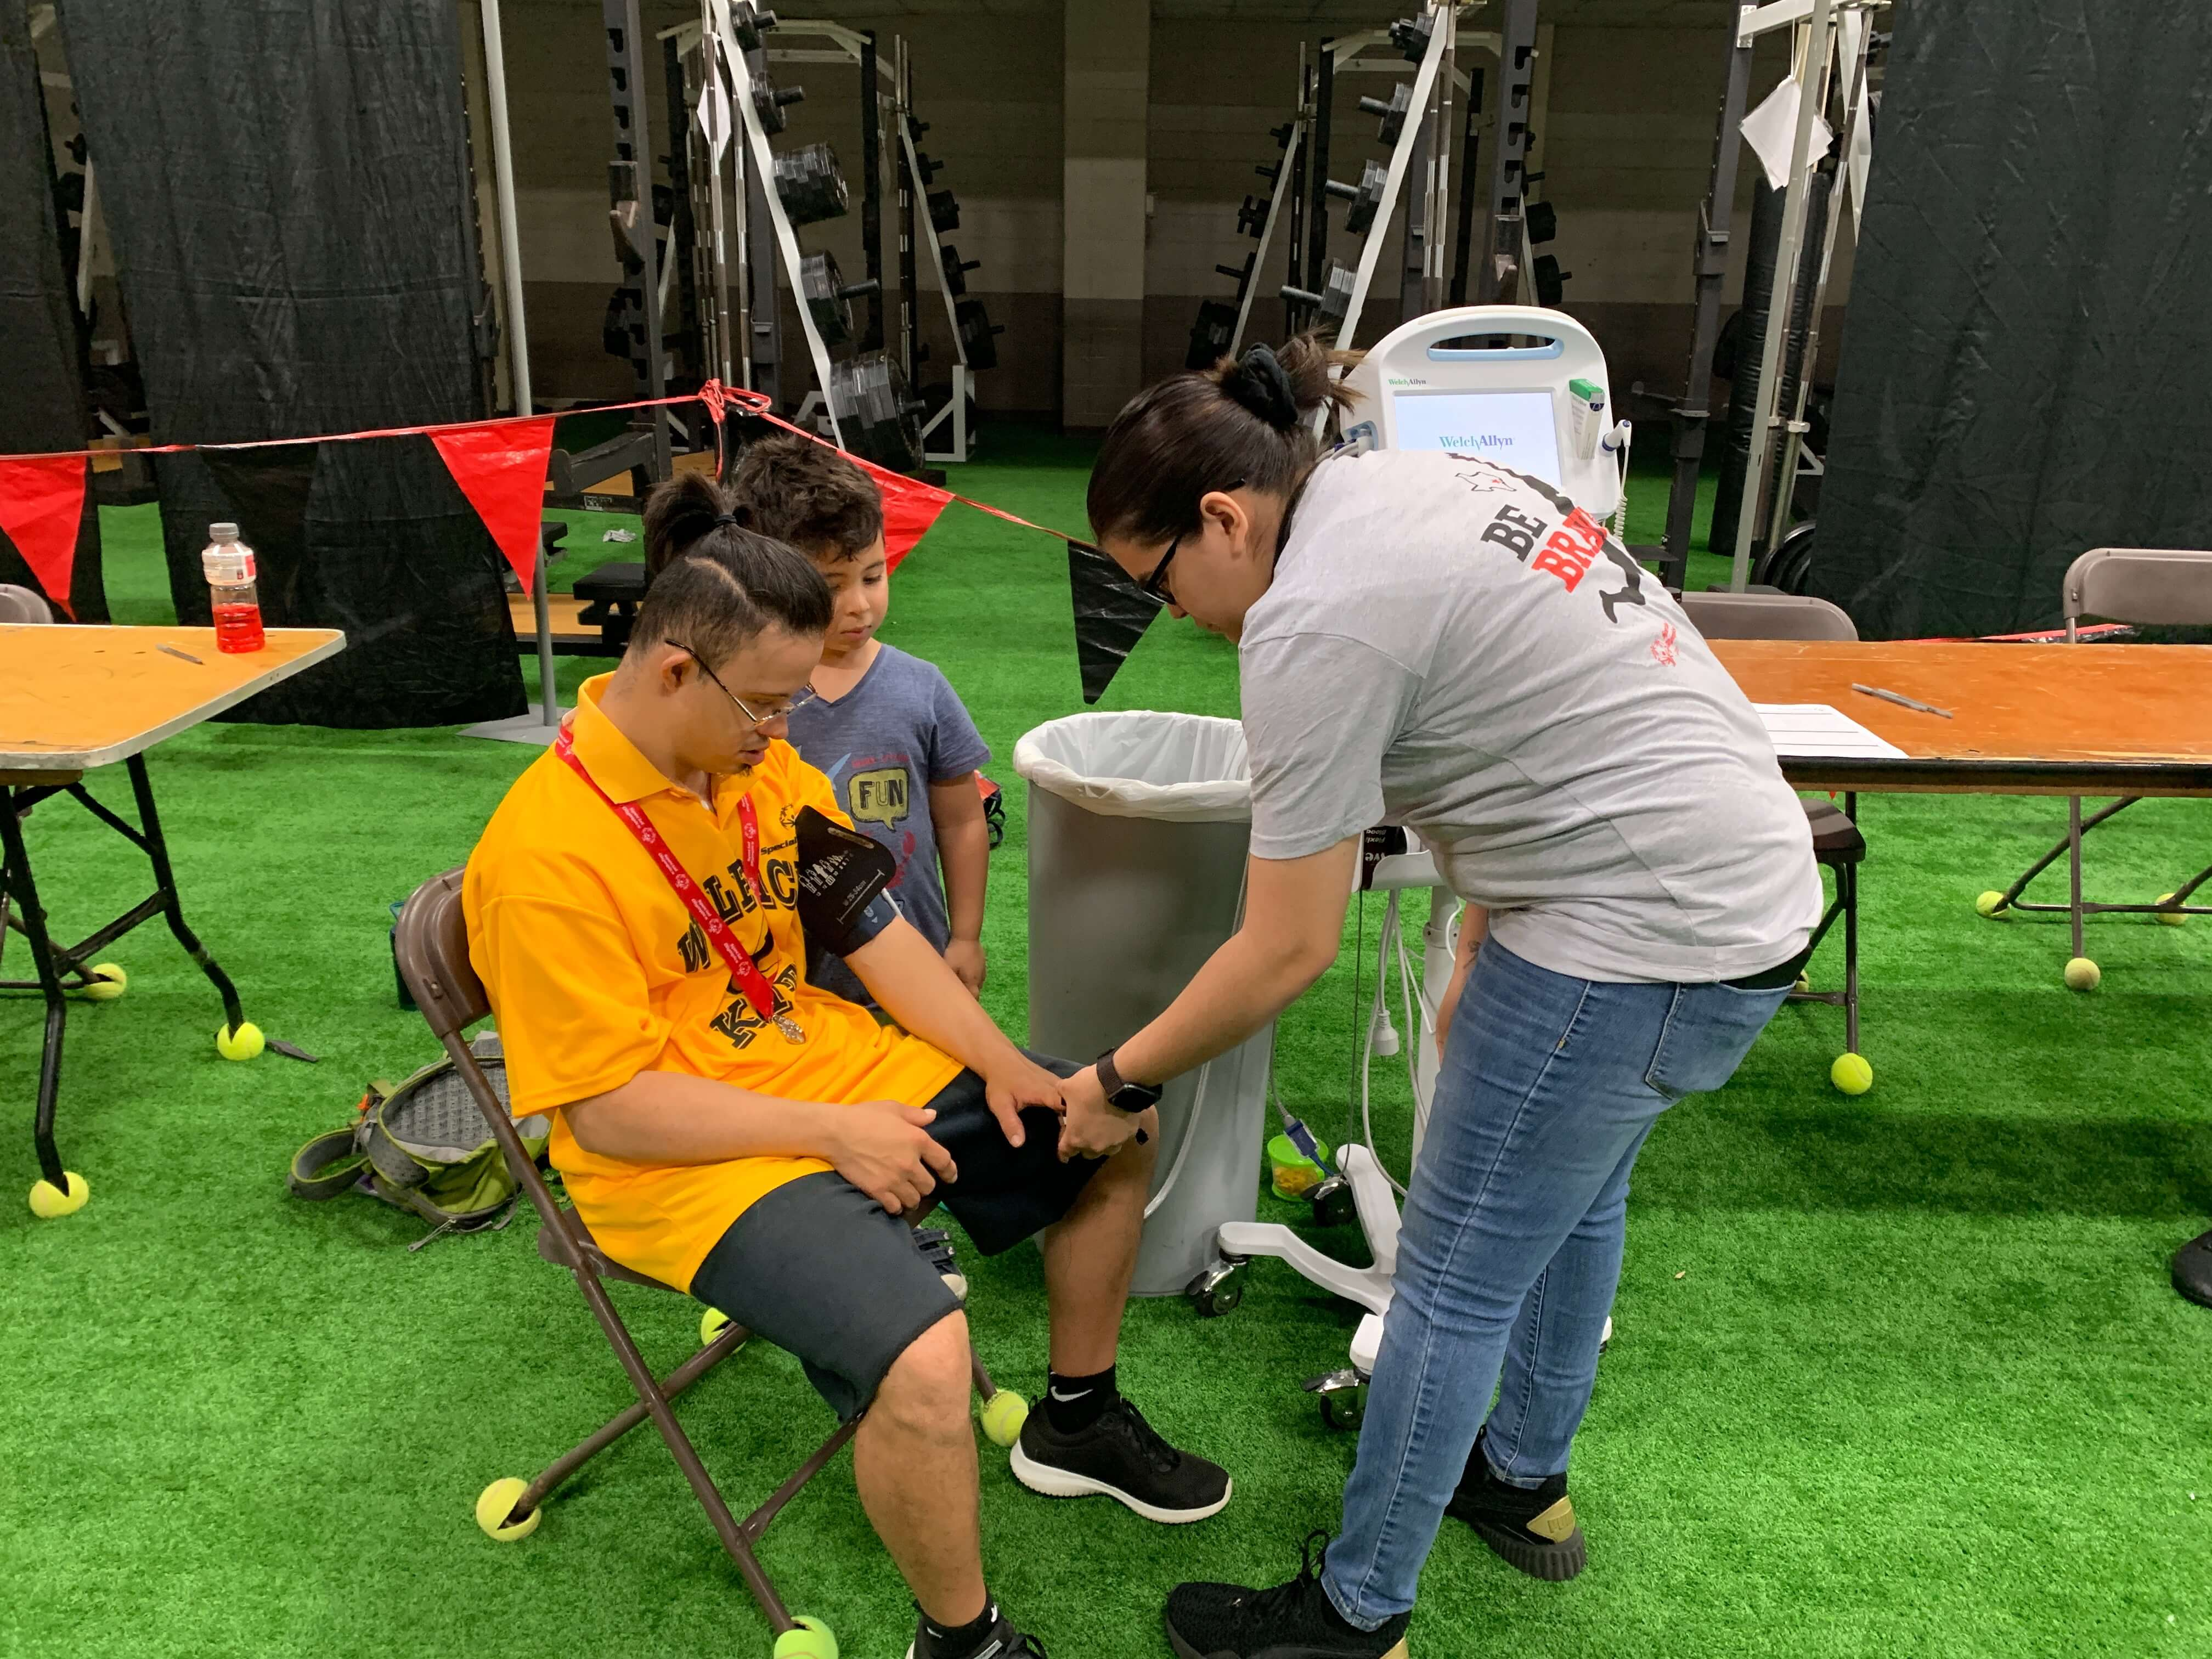 Ozi Agirbas, a 26-year-old athlete, gets his blood pressure checked in the Special Olympics MedFest tent.